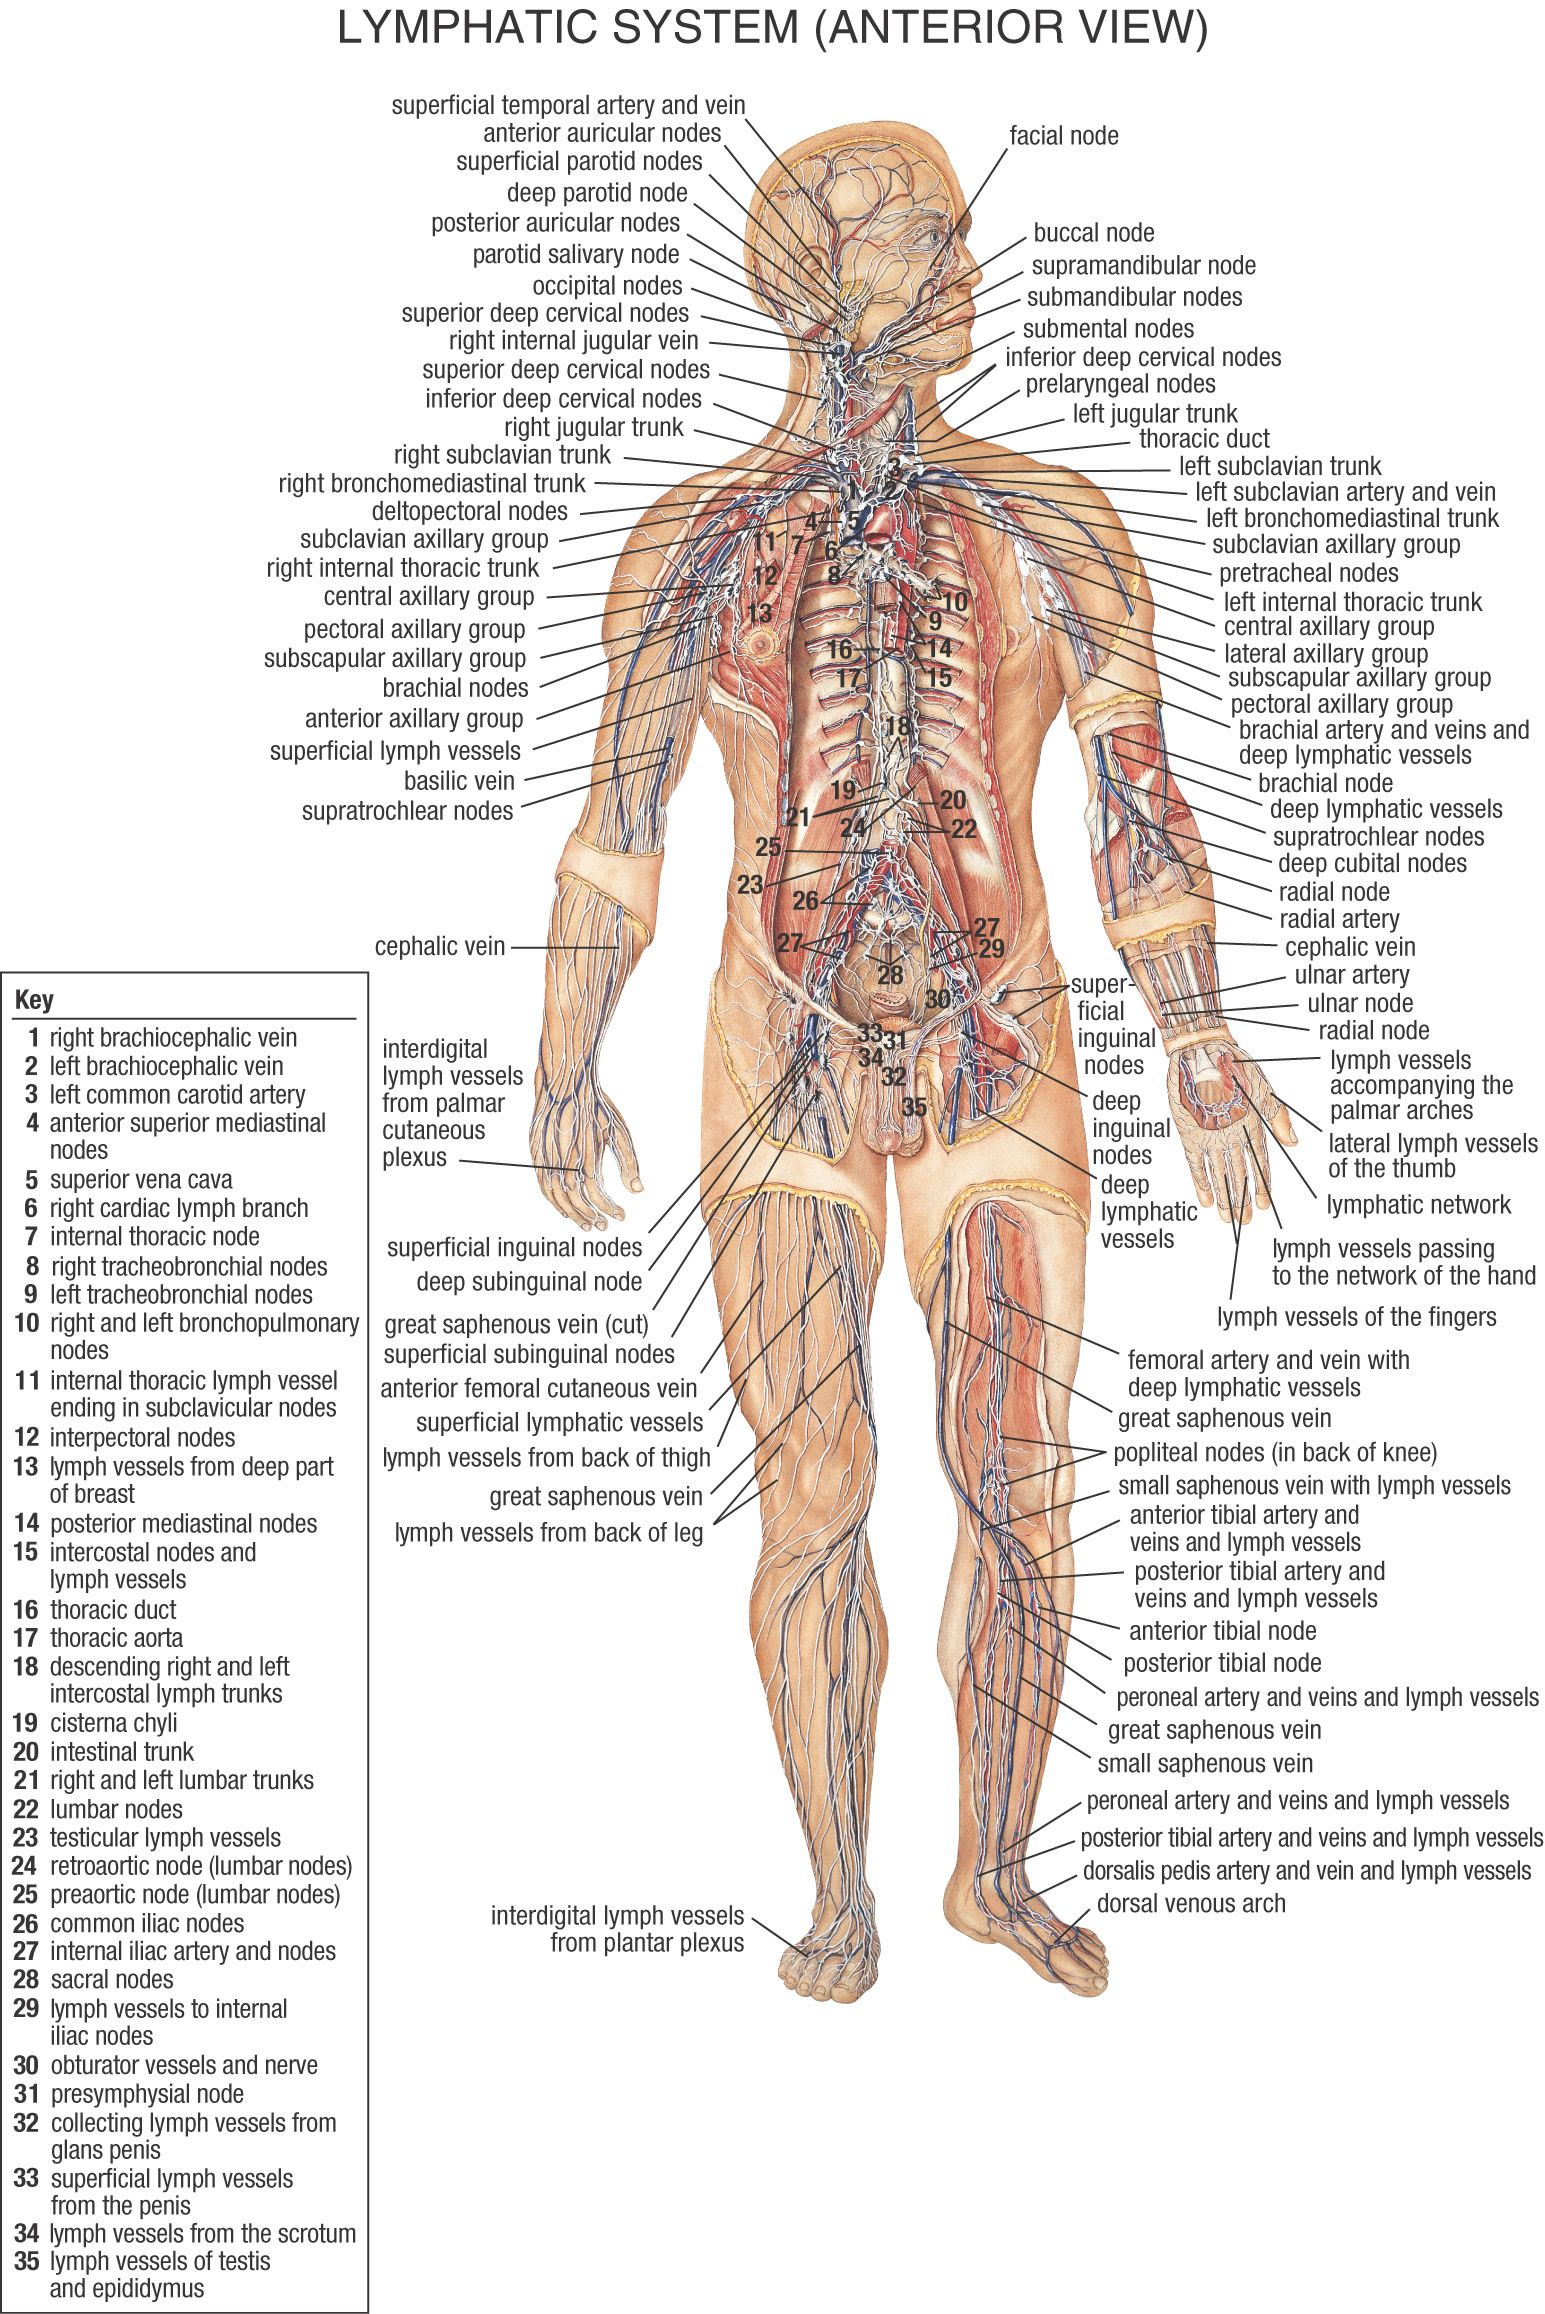 The Human Body Lymphatic System 5 | Moms school stuff | Pinterest ...